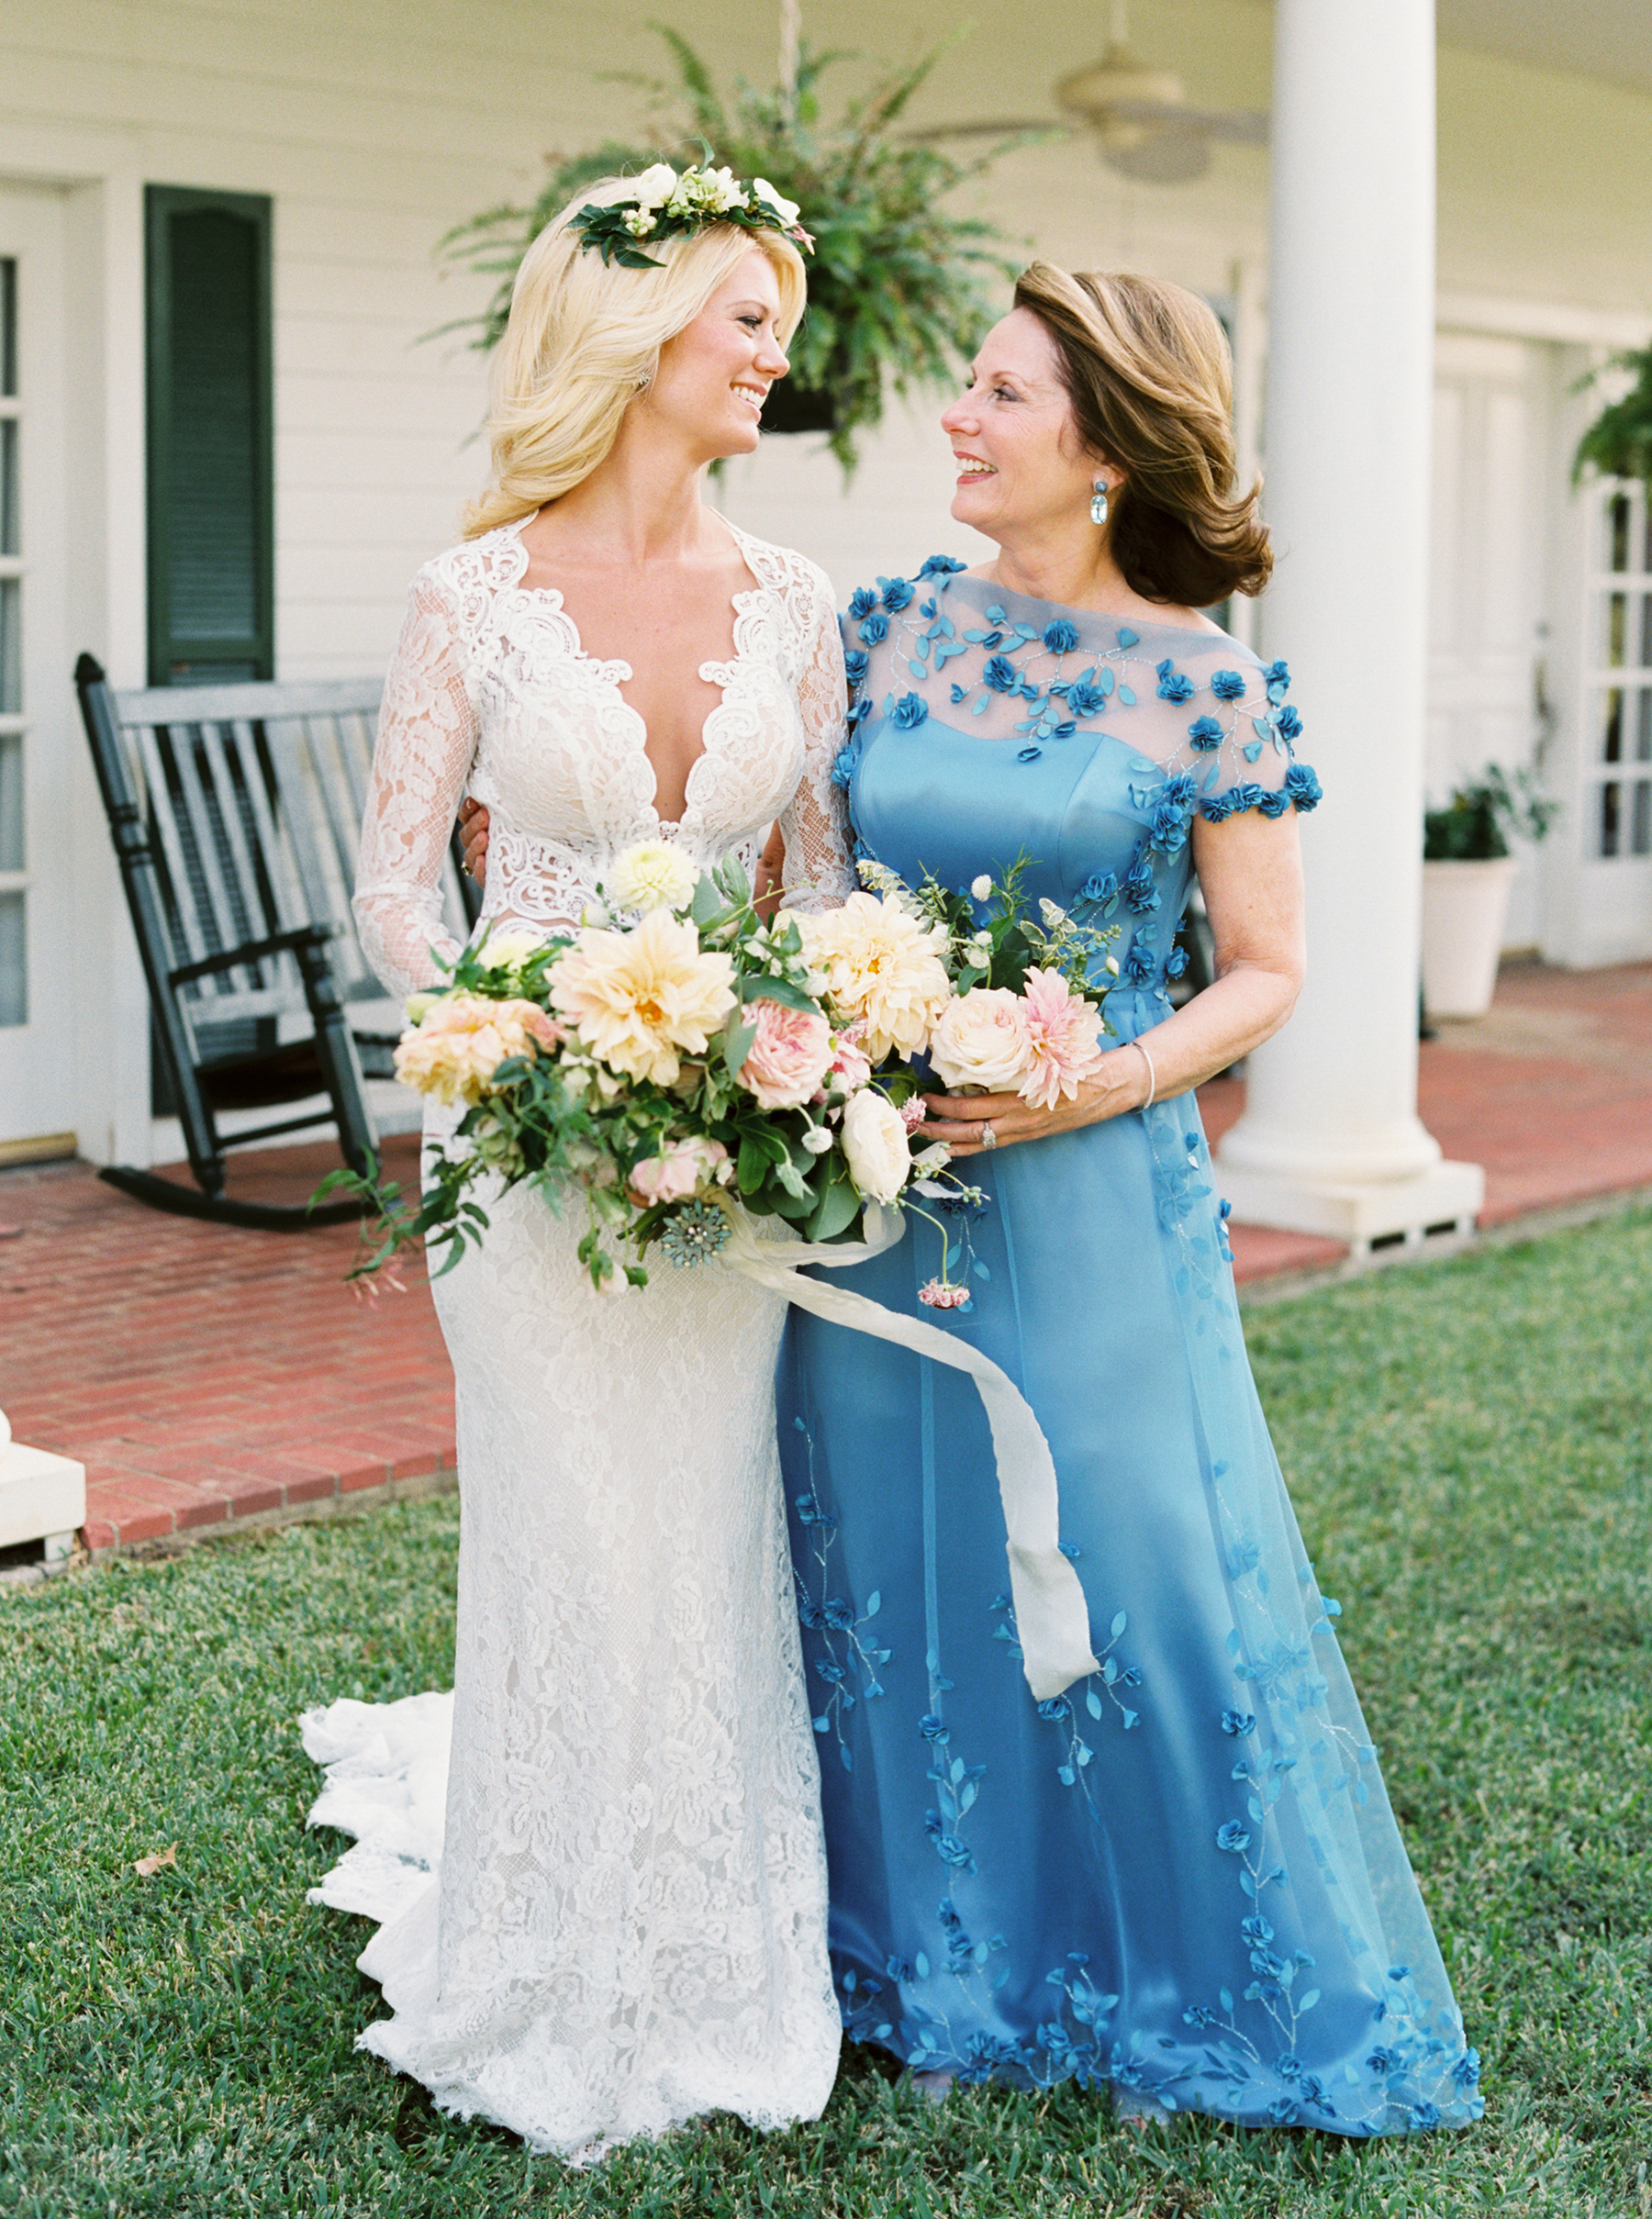 Spring Mother Of The Bride Dresses 2020.Mother Of The Bride And Groom Dresses We Love For A Spring